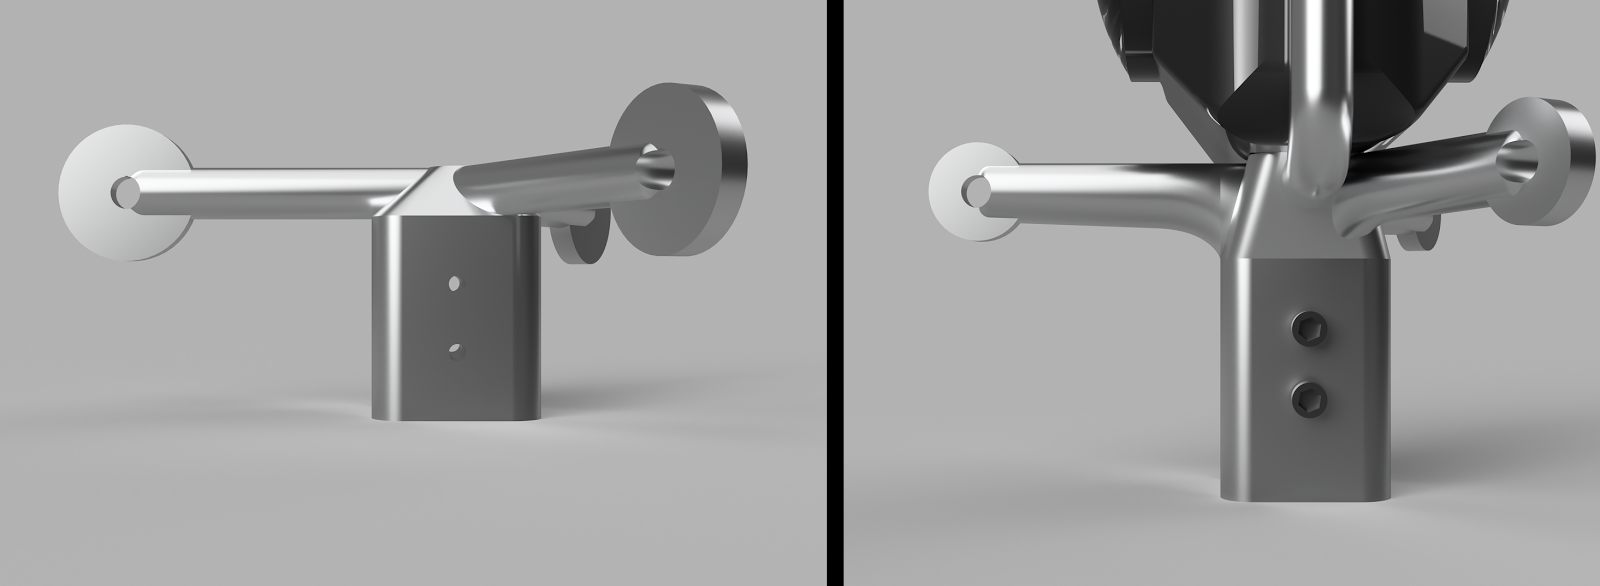 Evolution of parachute arm from v1 to v7 using FEA